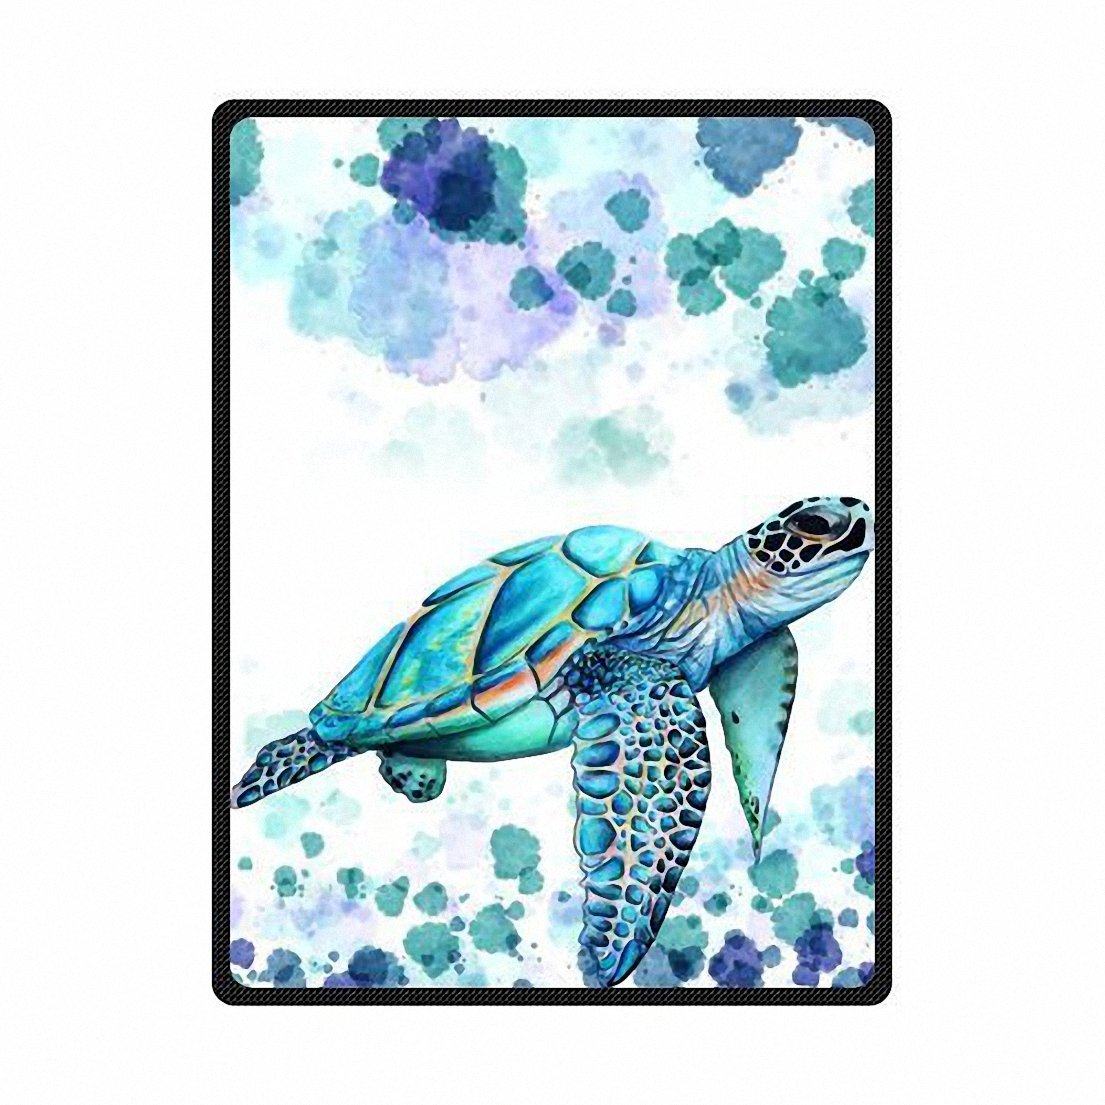 QH with Cartoon Turtle for Kids Velvet Plush Throw Blanket(Large) Super Soft and Cozy Fleece Blanket Perfect for Couch Sofa or Bed